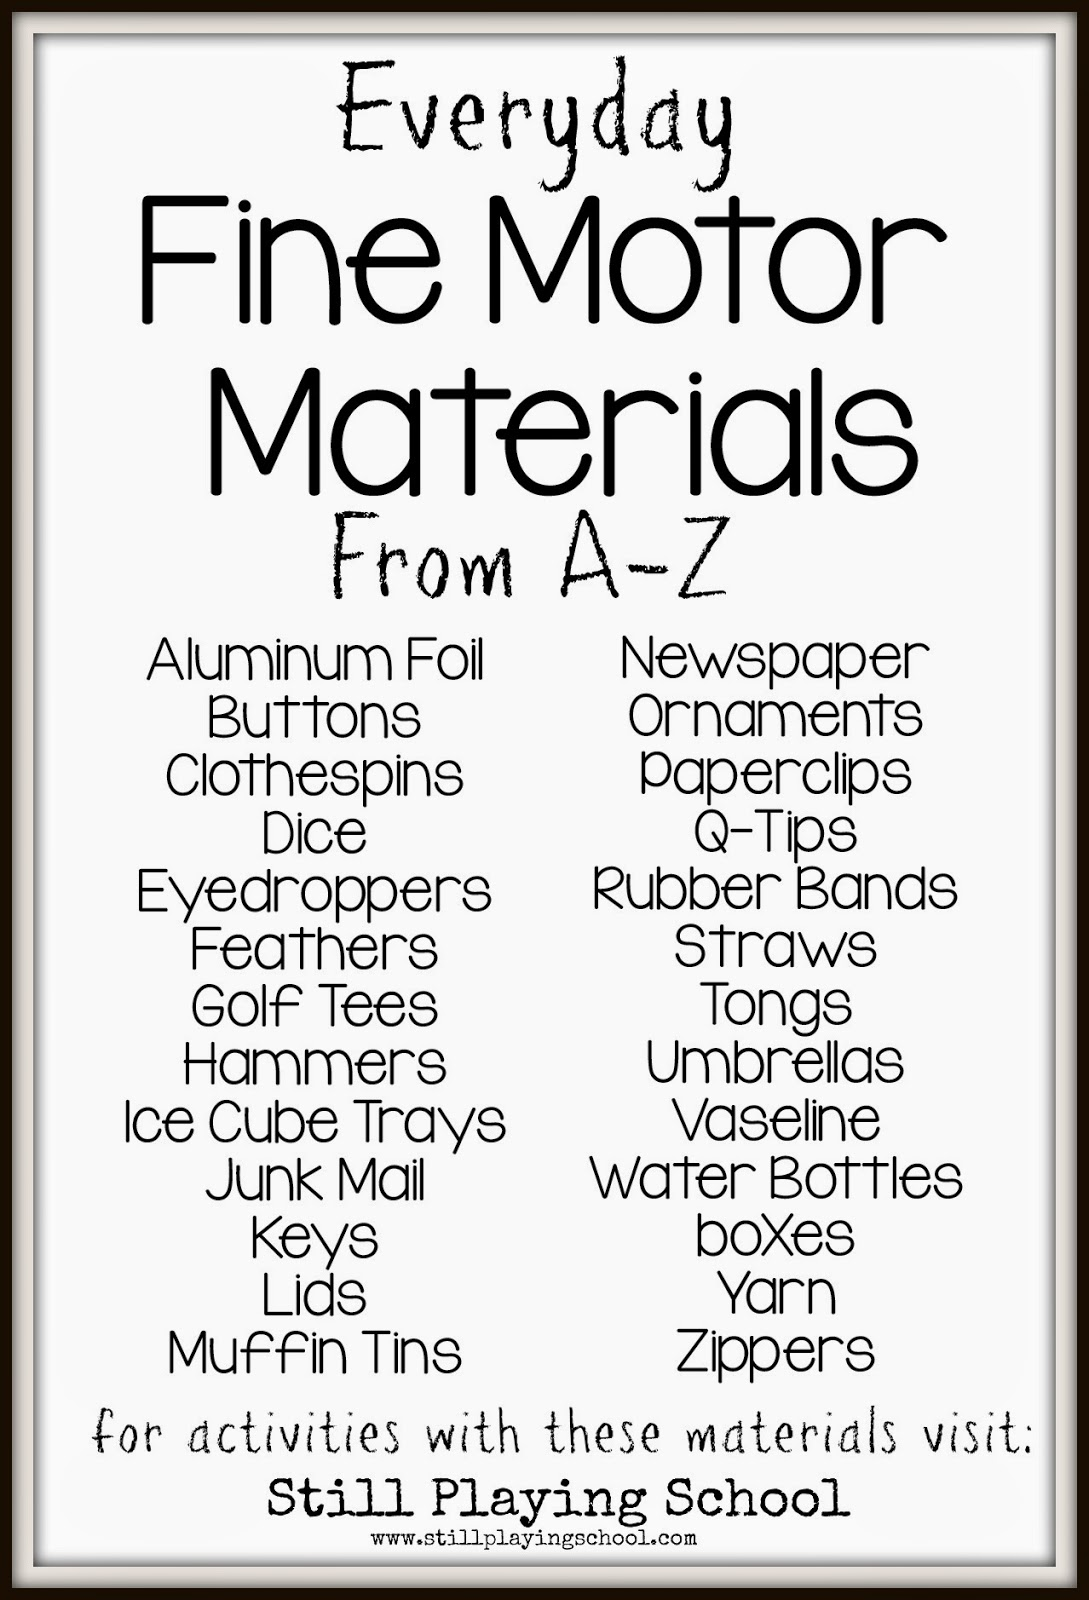 Everyday Fine Motor Materials From A To Z Still Playing